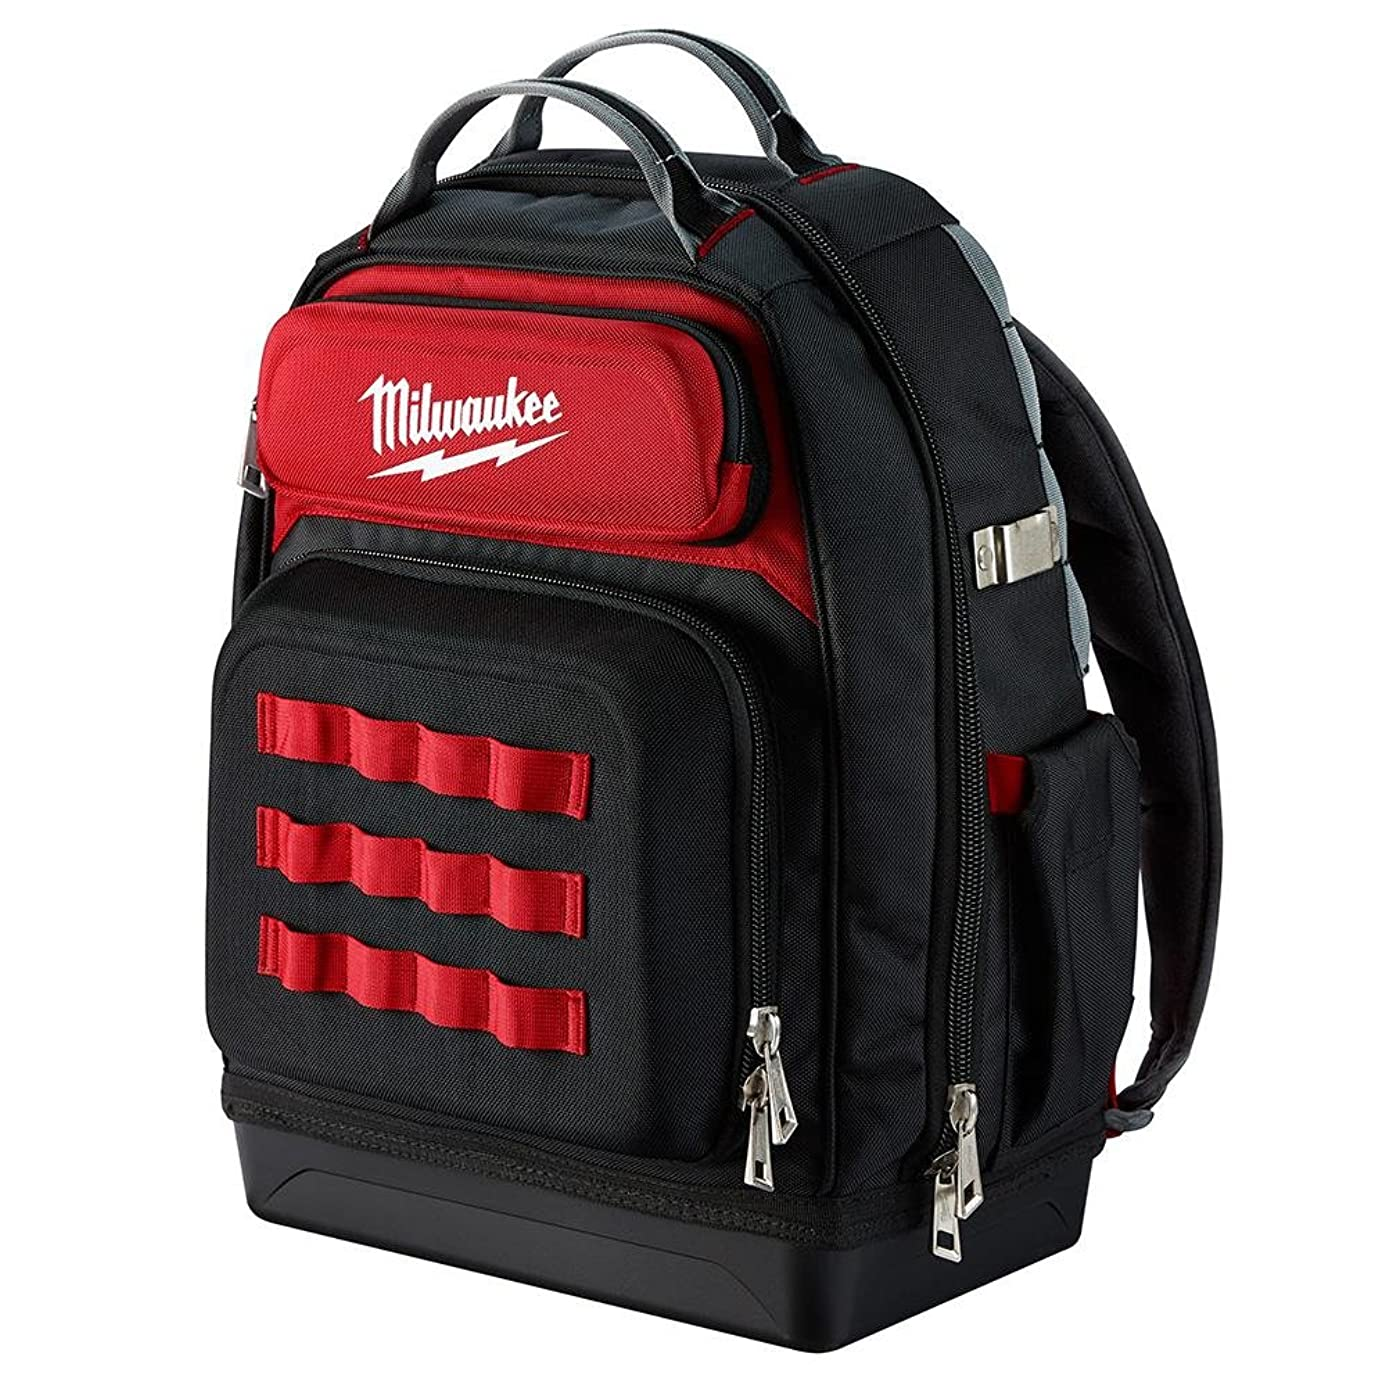 Milwaukee Ultimate Jobsite Backpack,Constructed of 1680D Ballistic Materials,with 48 Total Pockets, 5X More Durable and 2X More Padding, unsurpassed Comfort and Jobsite Performance! ole3859456